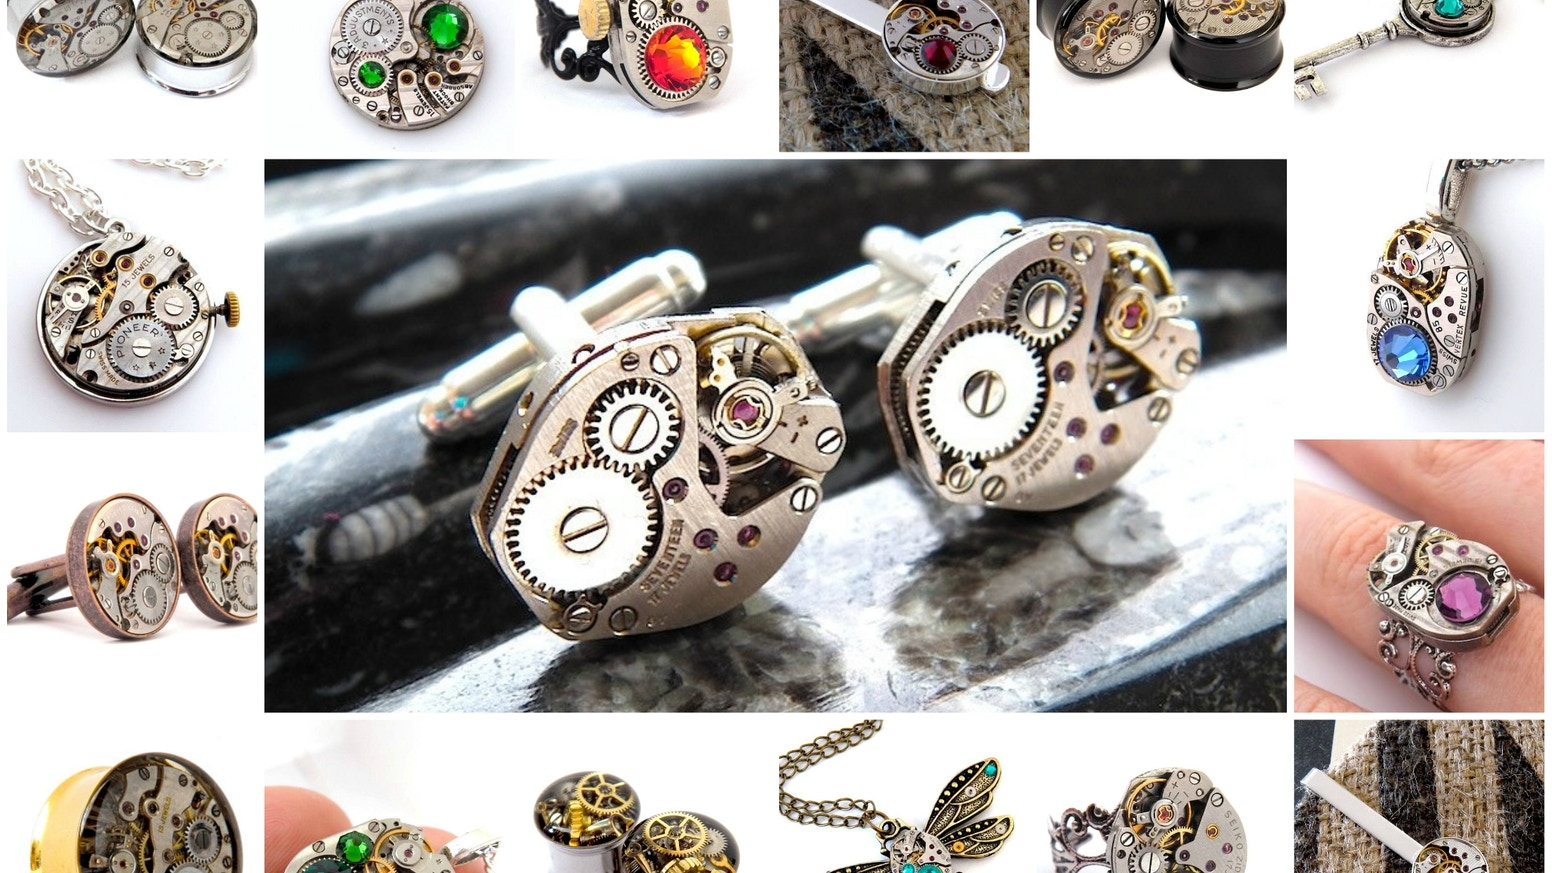 Breathing a new lease of life into vintage watch parts, I create steampunk cufflinks, necklaces, tie clips, earrings, rings and plugs.